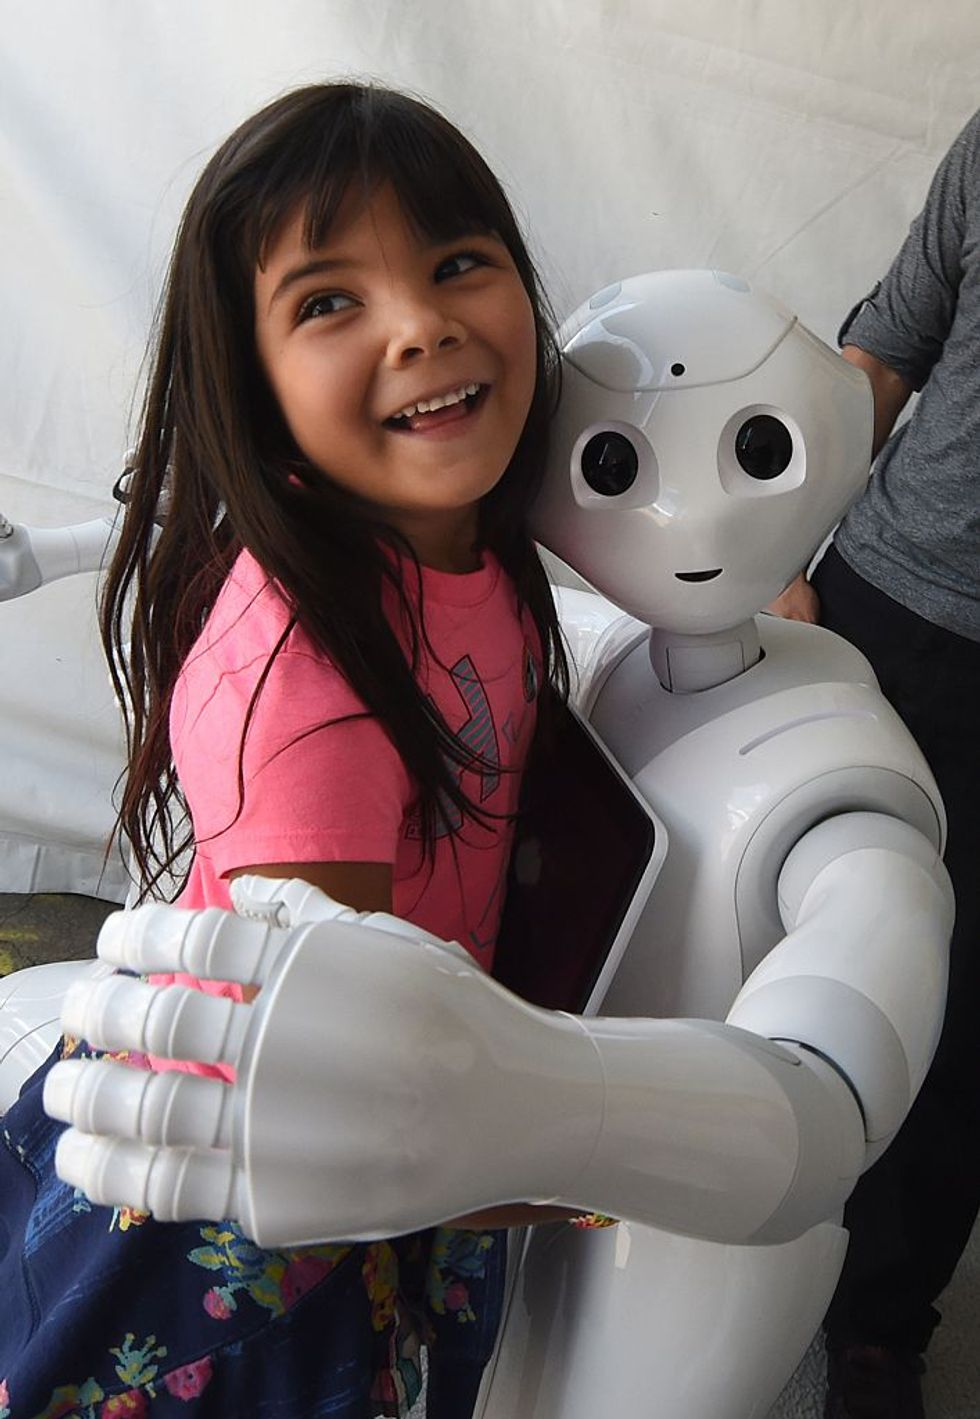 Forget Westworld. Disney May Soon Have Huggable Robots to Interact with Visitors.